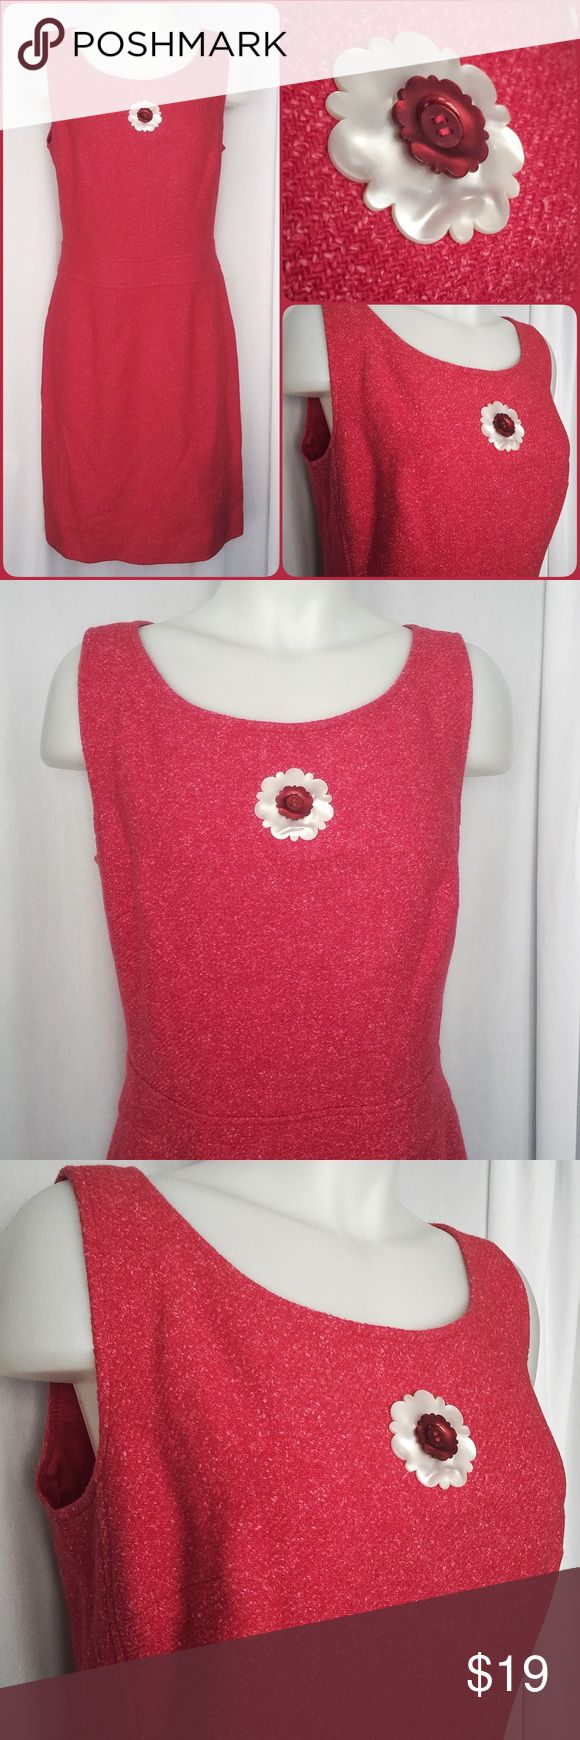 Wool/Silk Lined Sassy Red Dress by Etcetera SZ 10 Gorgeous dress by Etcetera! Tailored and uniquely sassy, fully lined and beautiful. The color is a soft red with pink undertones and the material is what truly adds the designers edge. A blend of wool, silk and make the material thick but very soft, not scratchy or rough. The added button zest is another eye catching stunner. In excellent condition and ready to enjoy! Etcetera Dresses